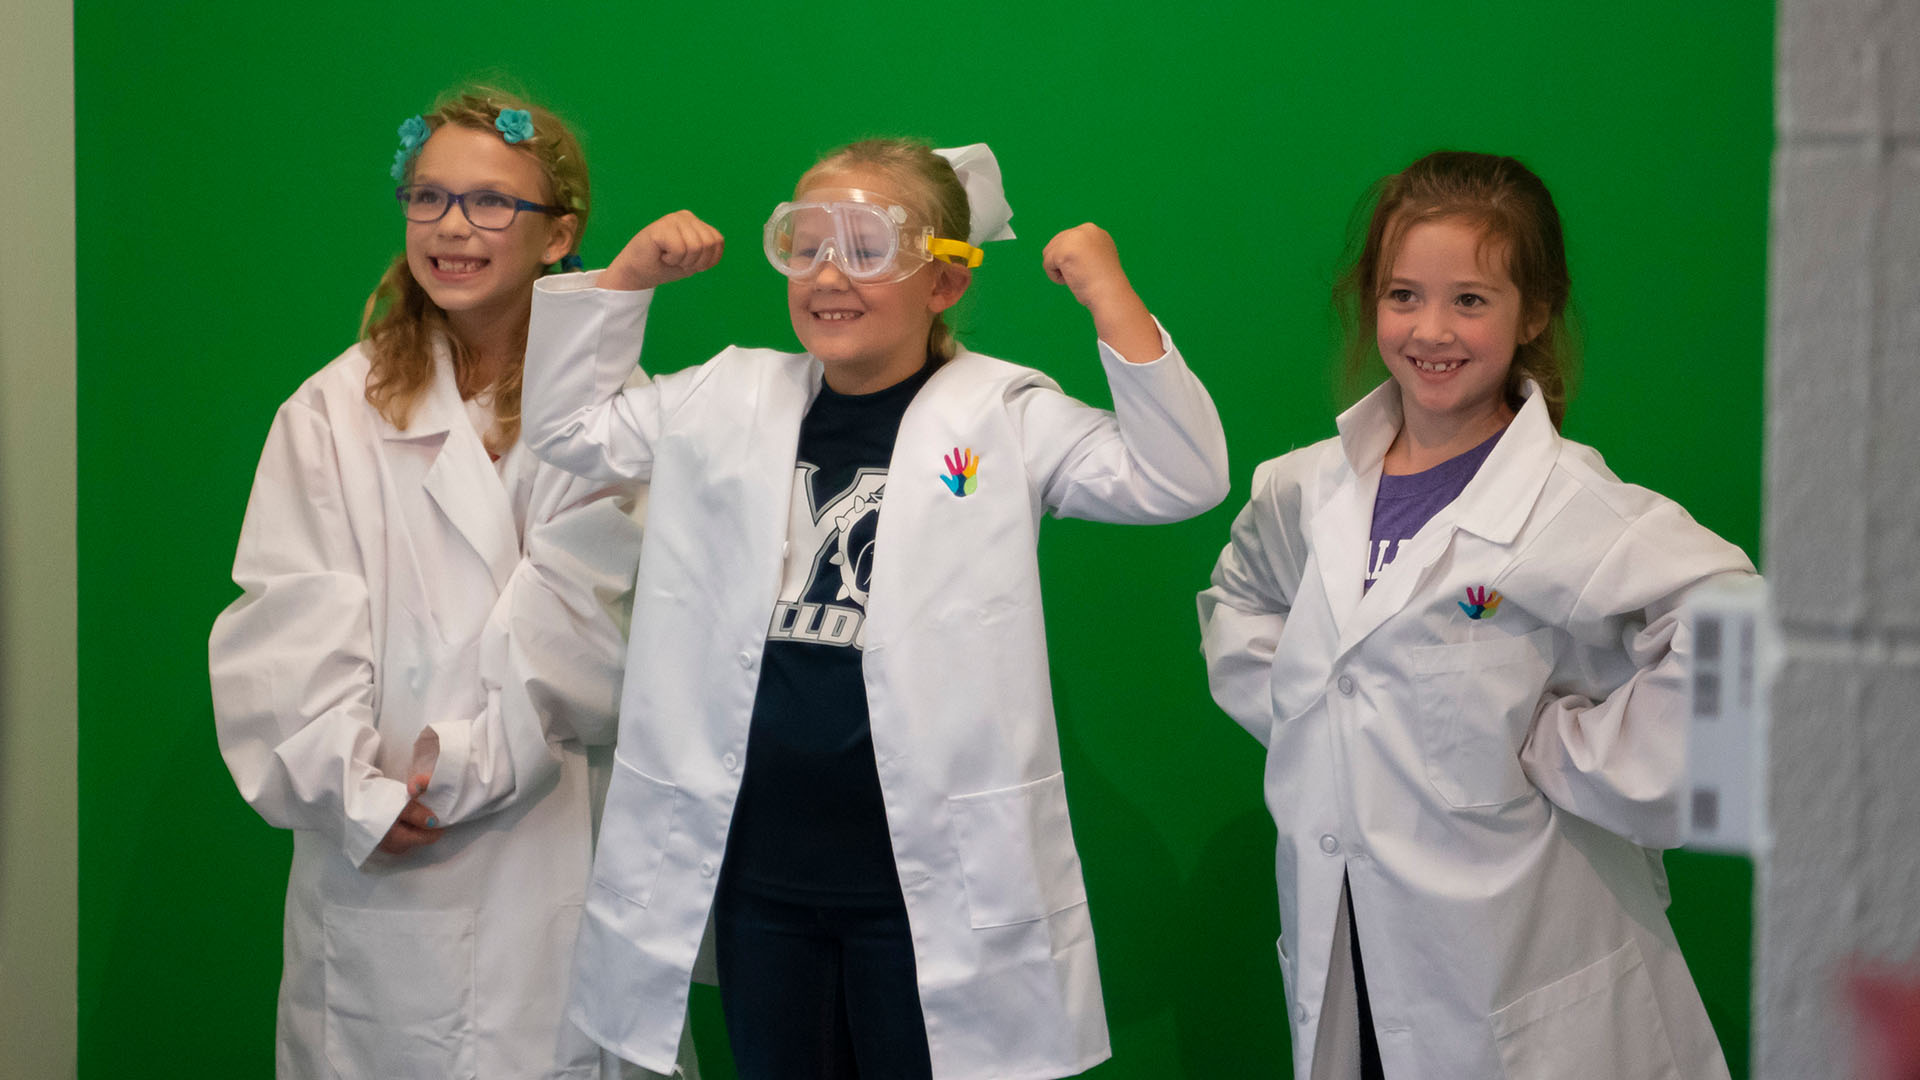 Three female K-12 students pose for photos in Experience Center in lab coats